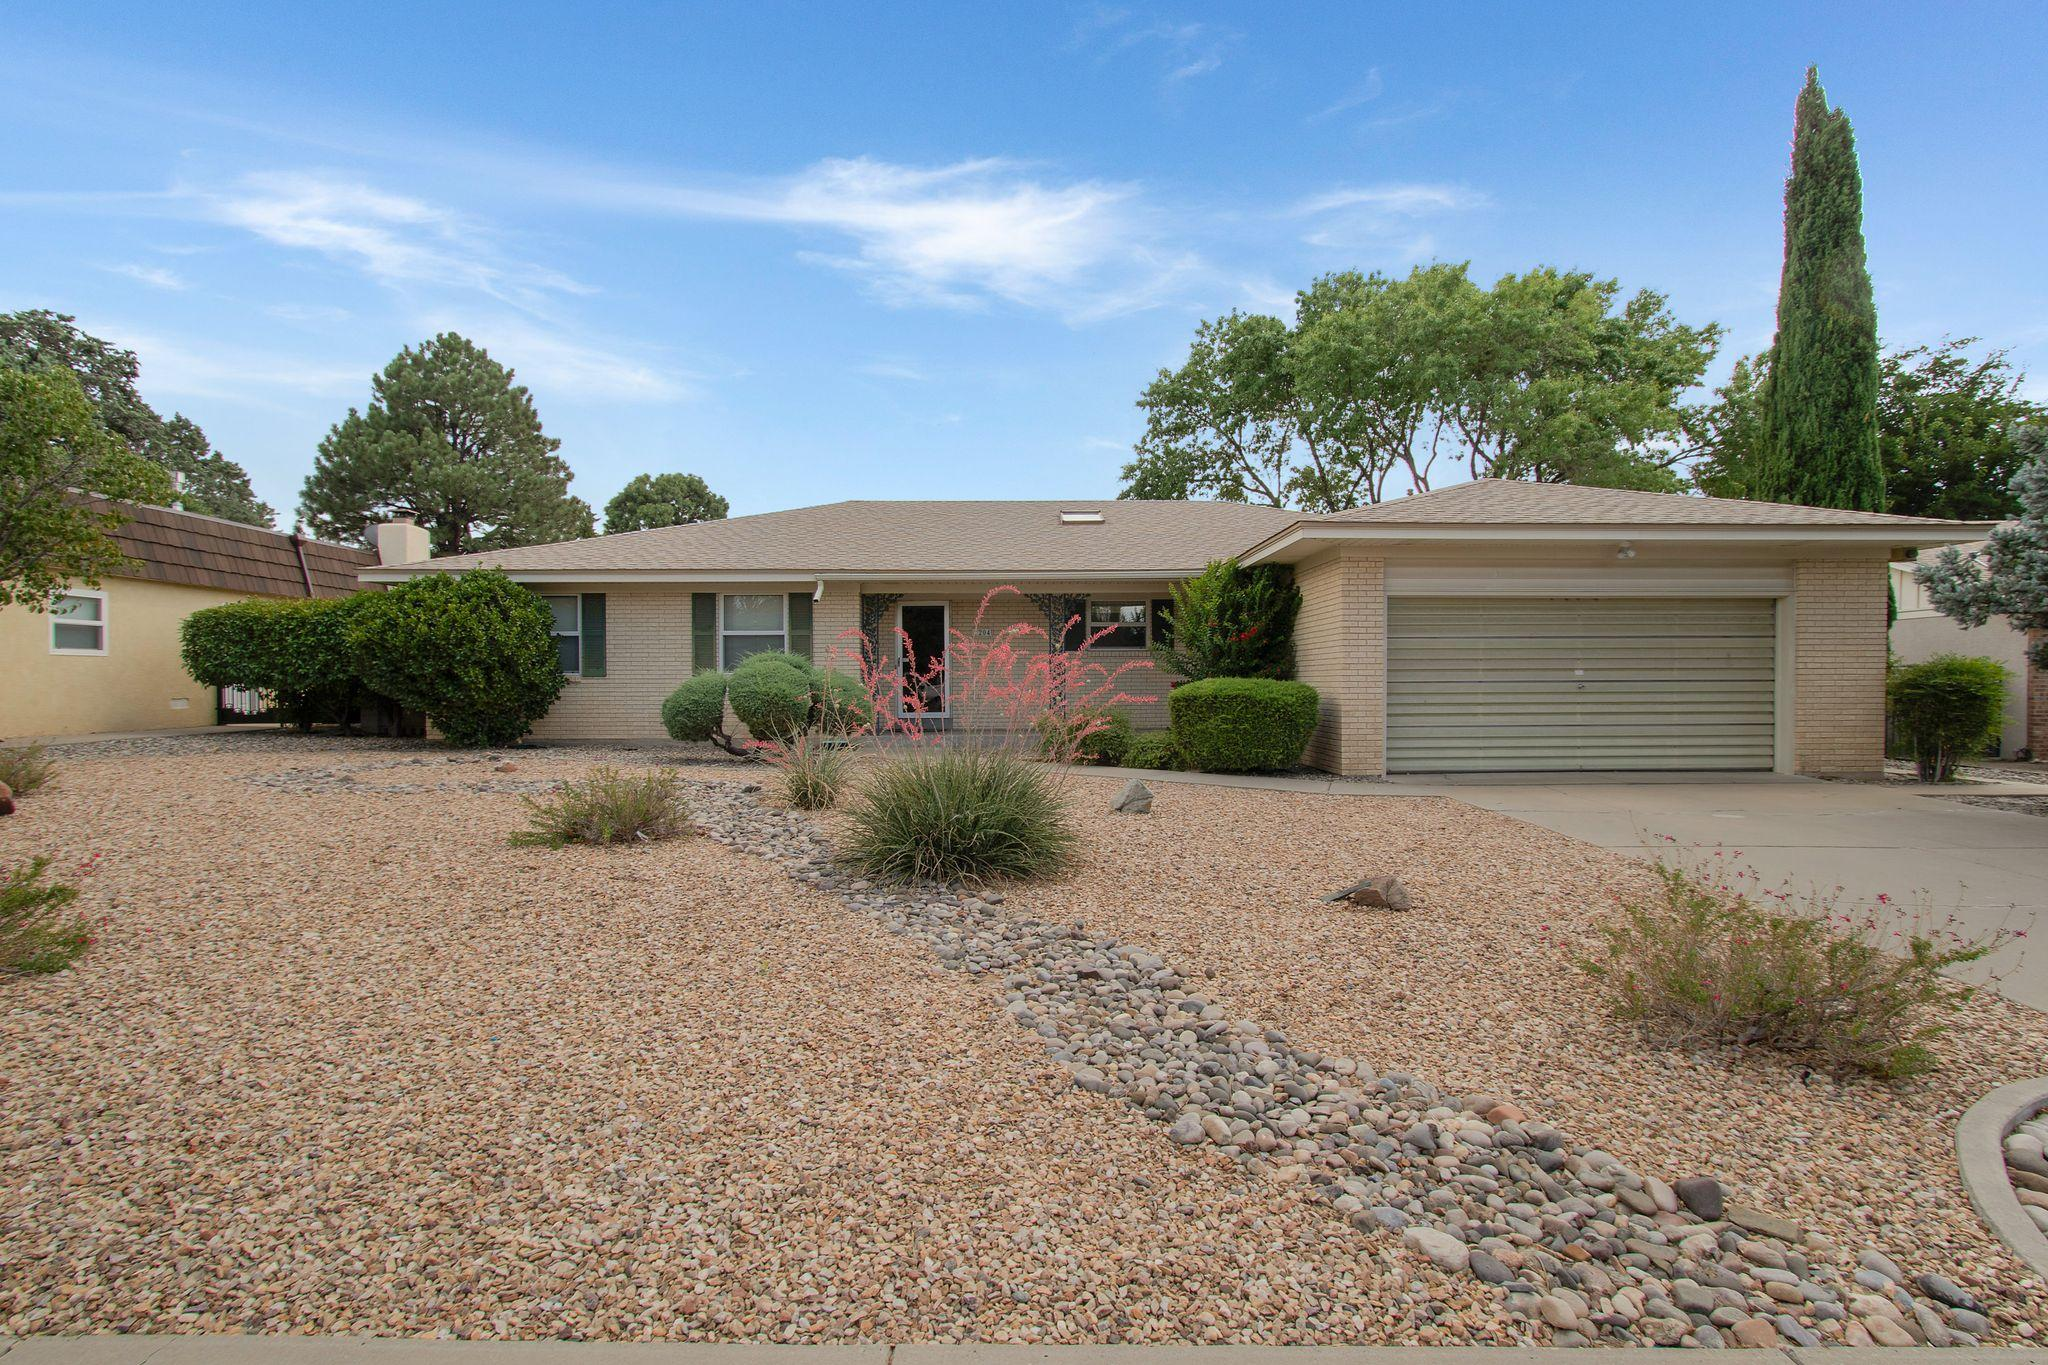 7204 Arroyo Del Oso Avenue NE Property Photo - Albuquerque, NM real estate listing